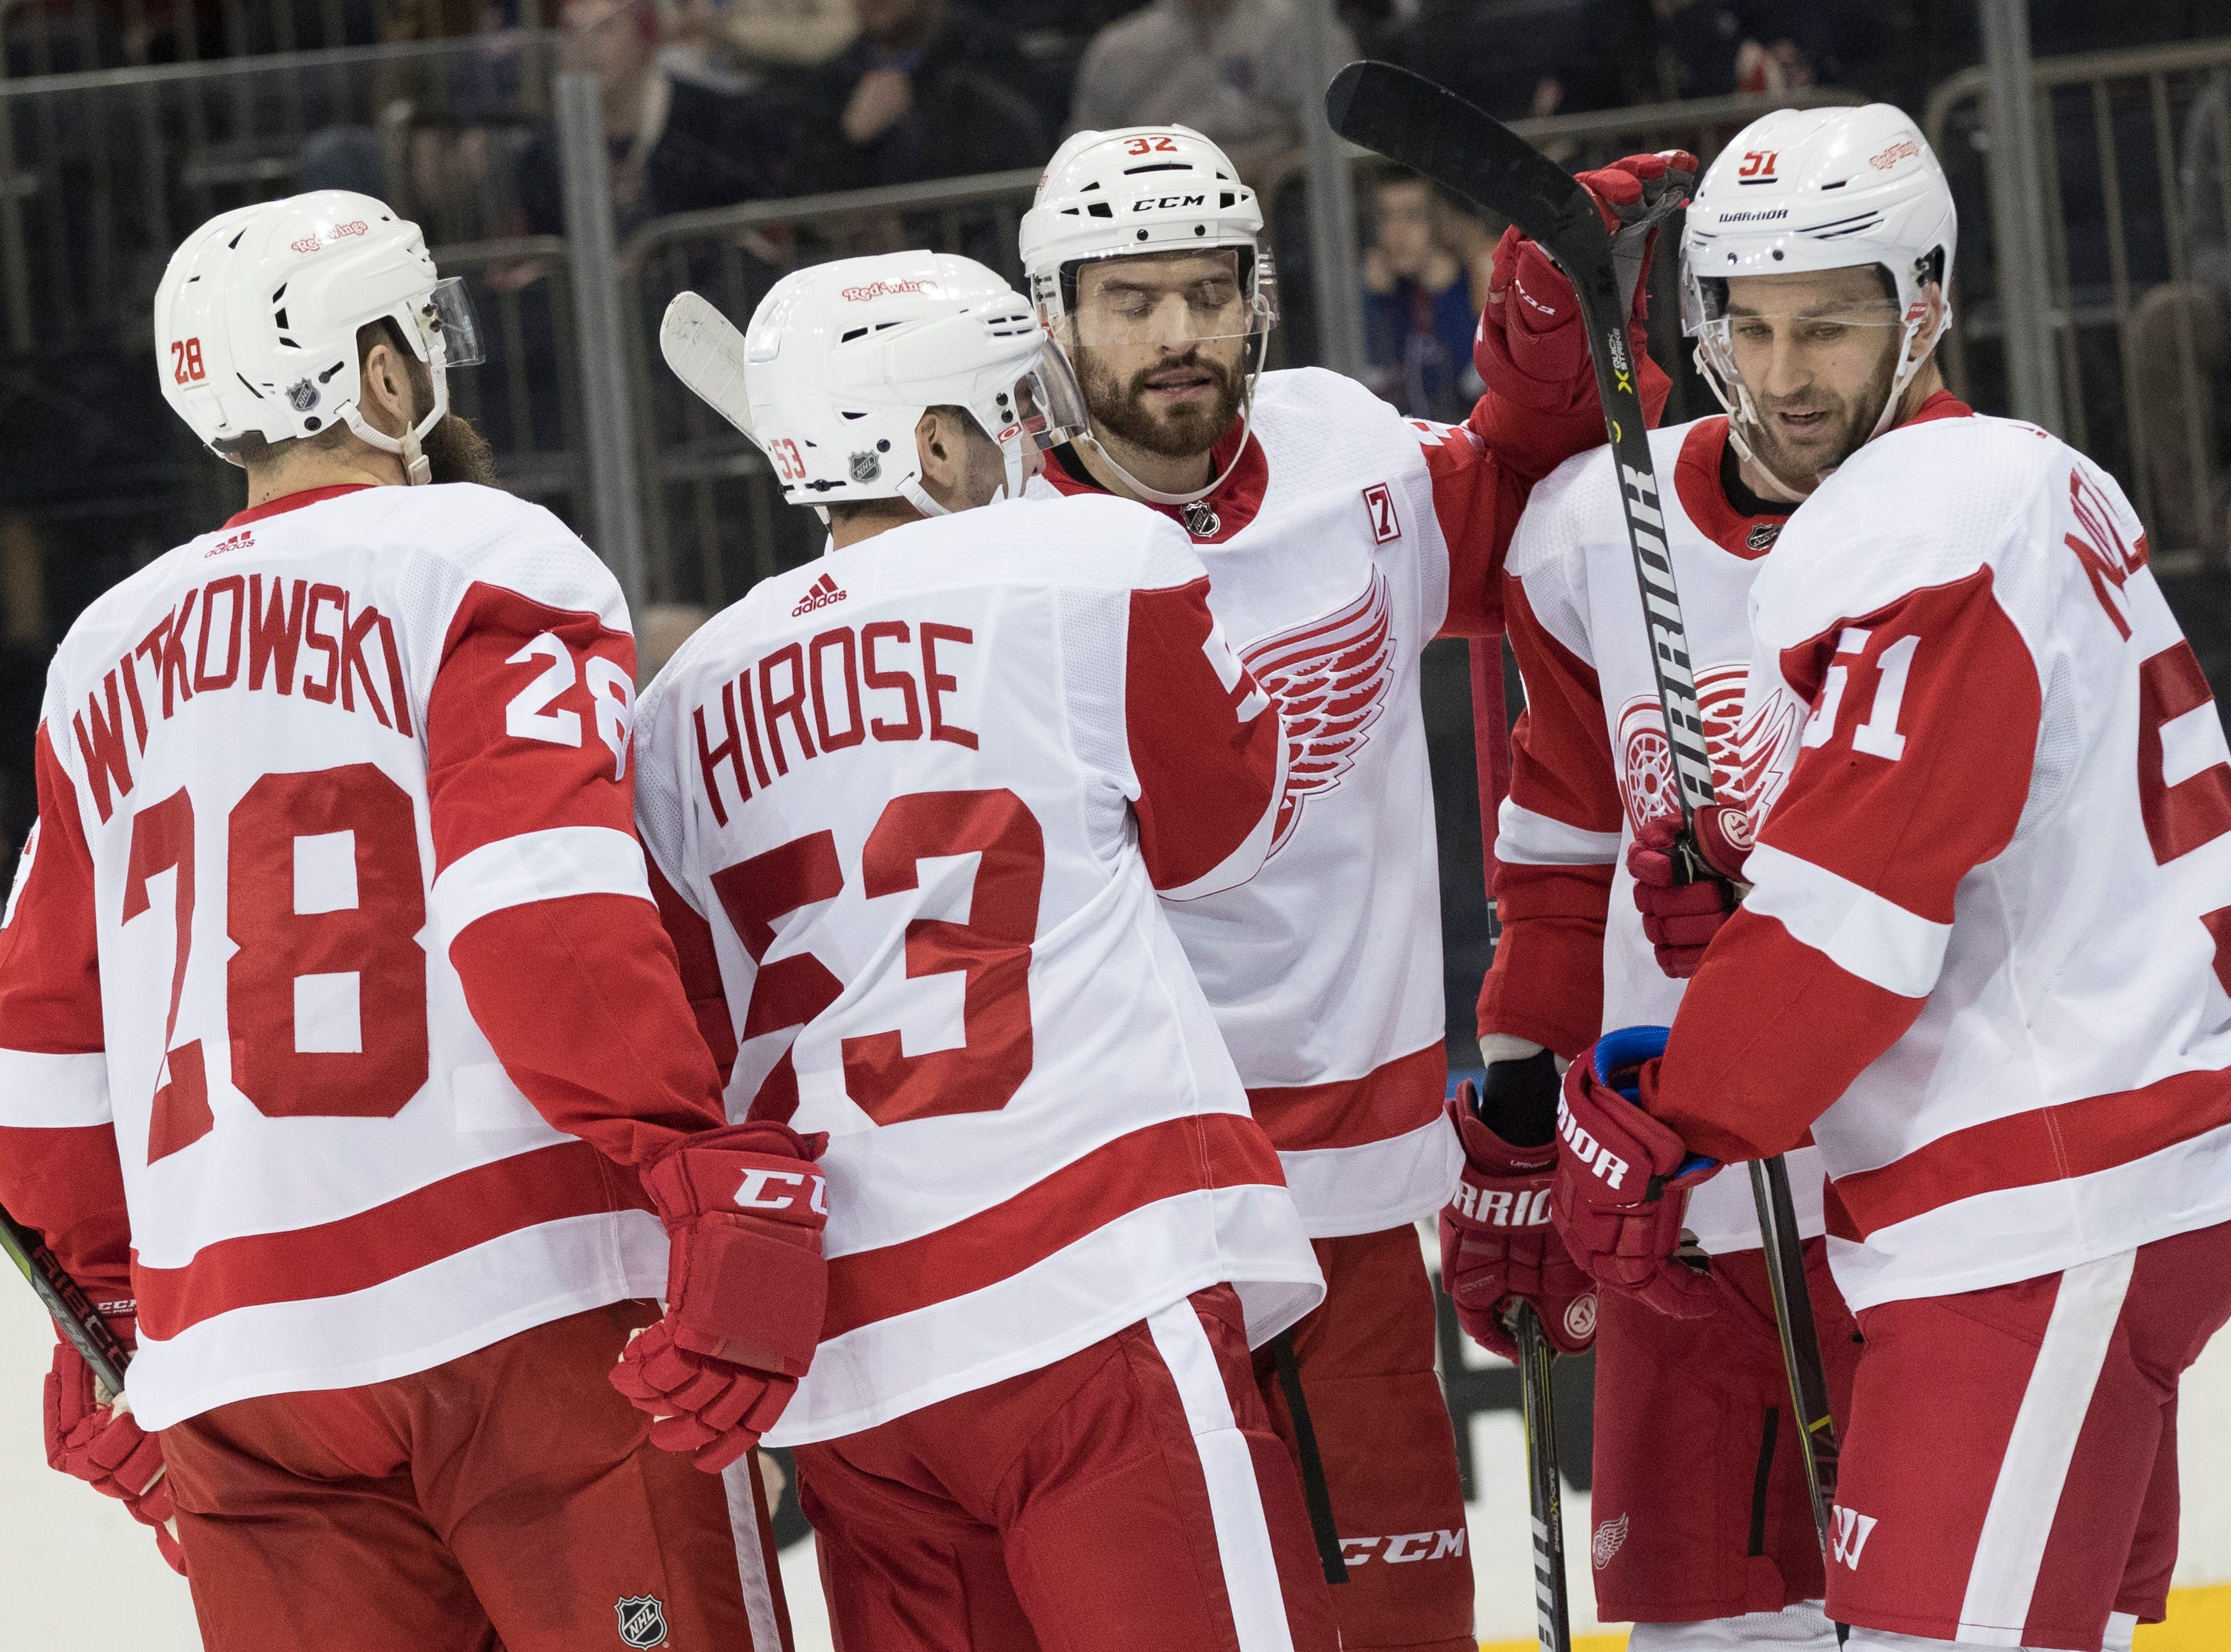 Detroit Red Wings center Frans Nielsen (51) celebrates after scoring a goal with his teammates during the first period.